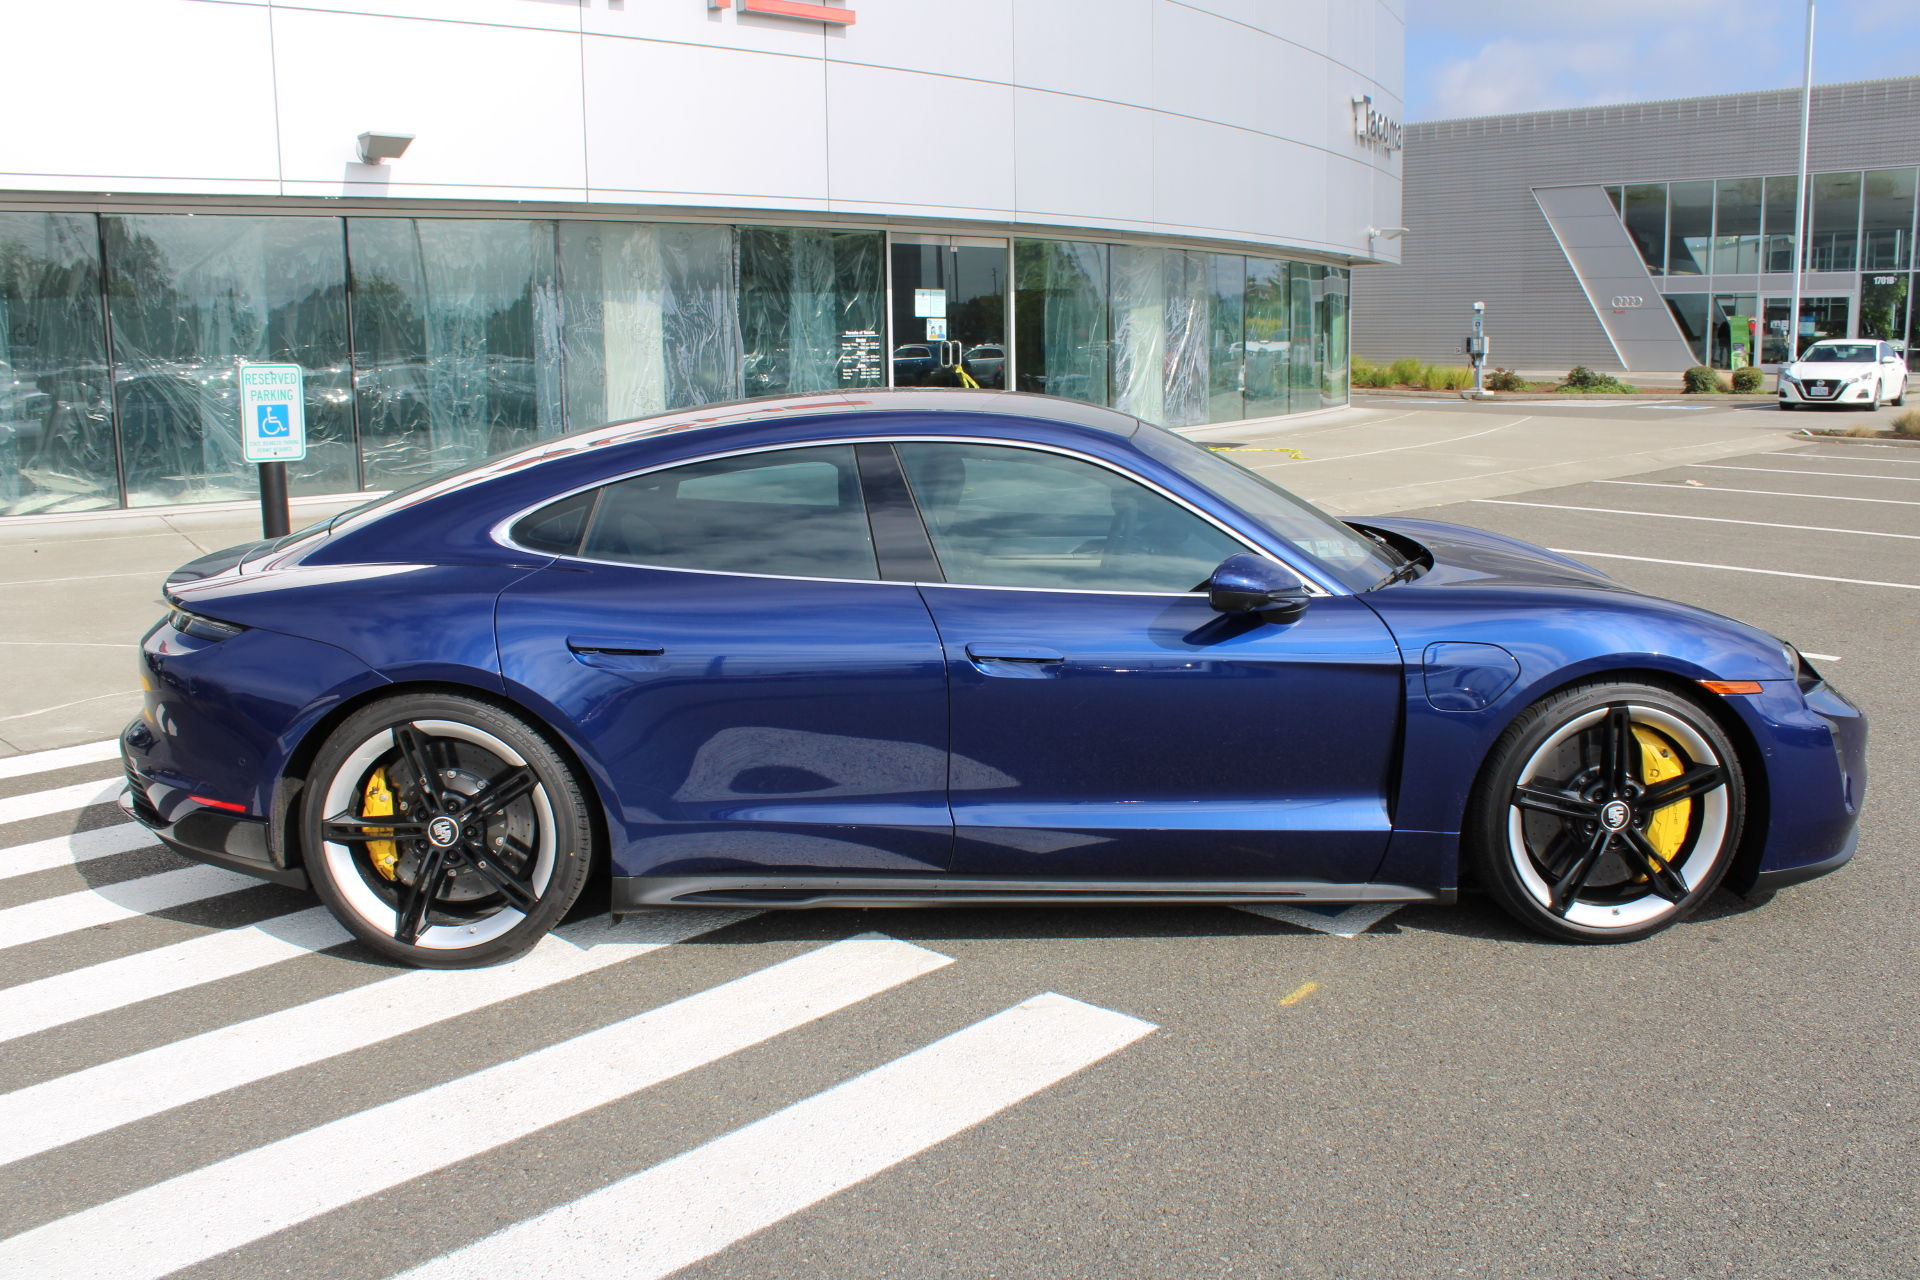 New 2020 Porsche Taycan 4S 4dr Car in Fife #P1706 ...